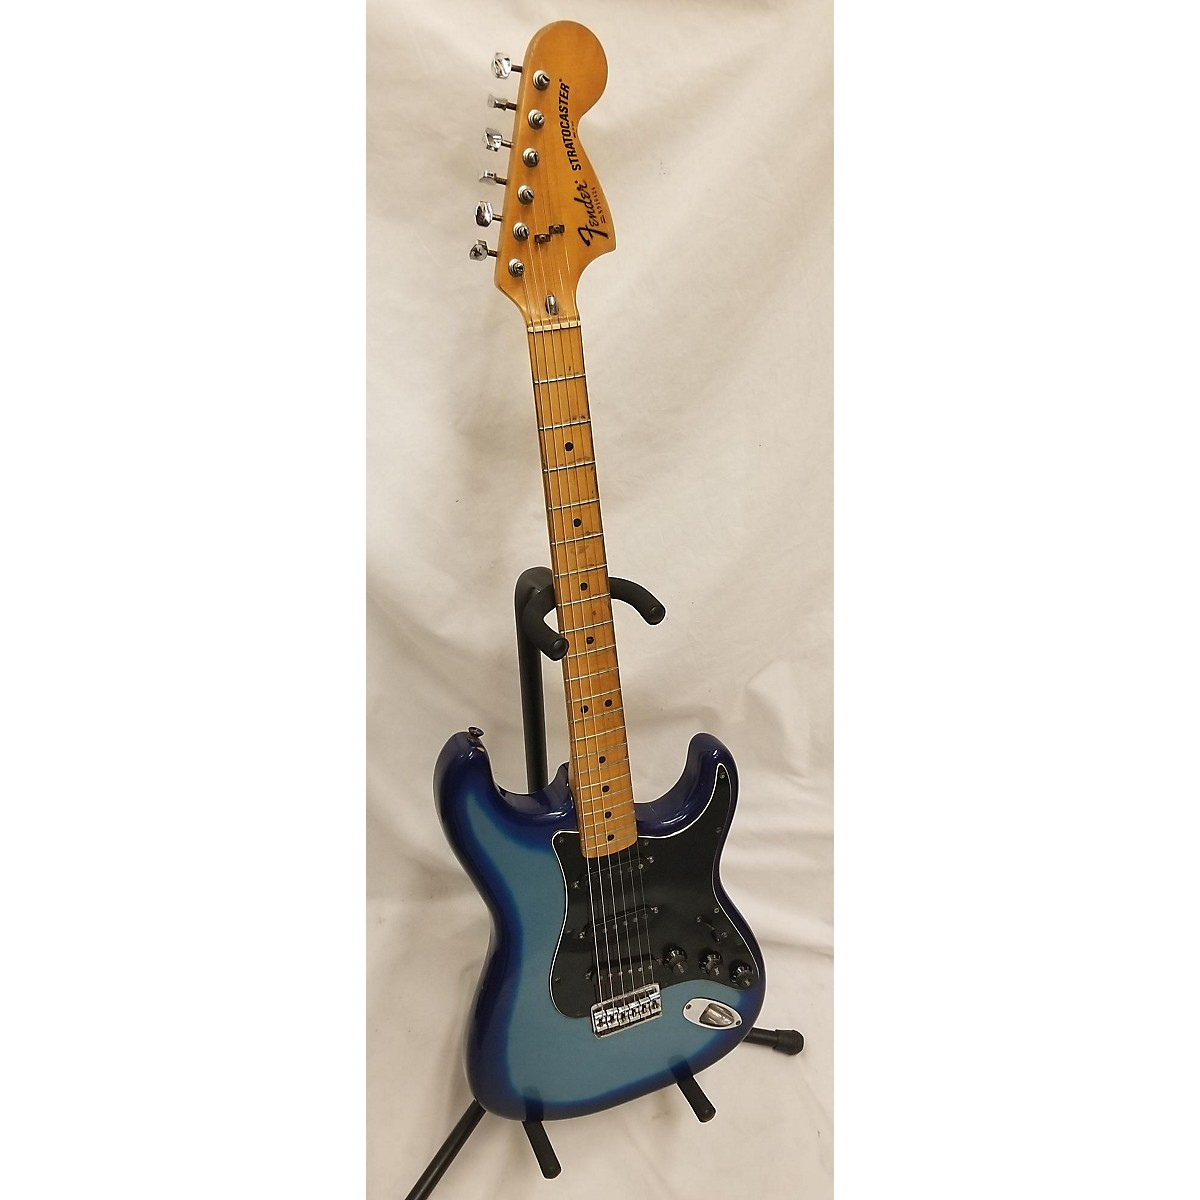 Fender 1979 79 Stratocaster HT Refin Solid Body Electric Guitar